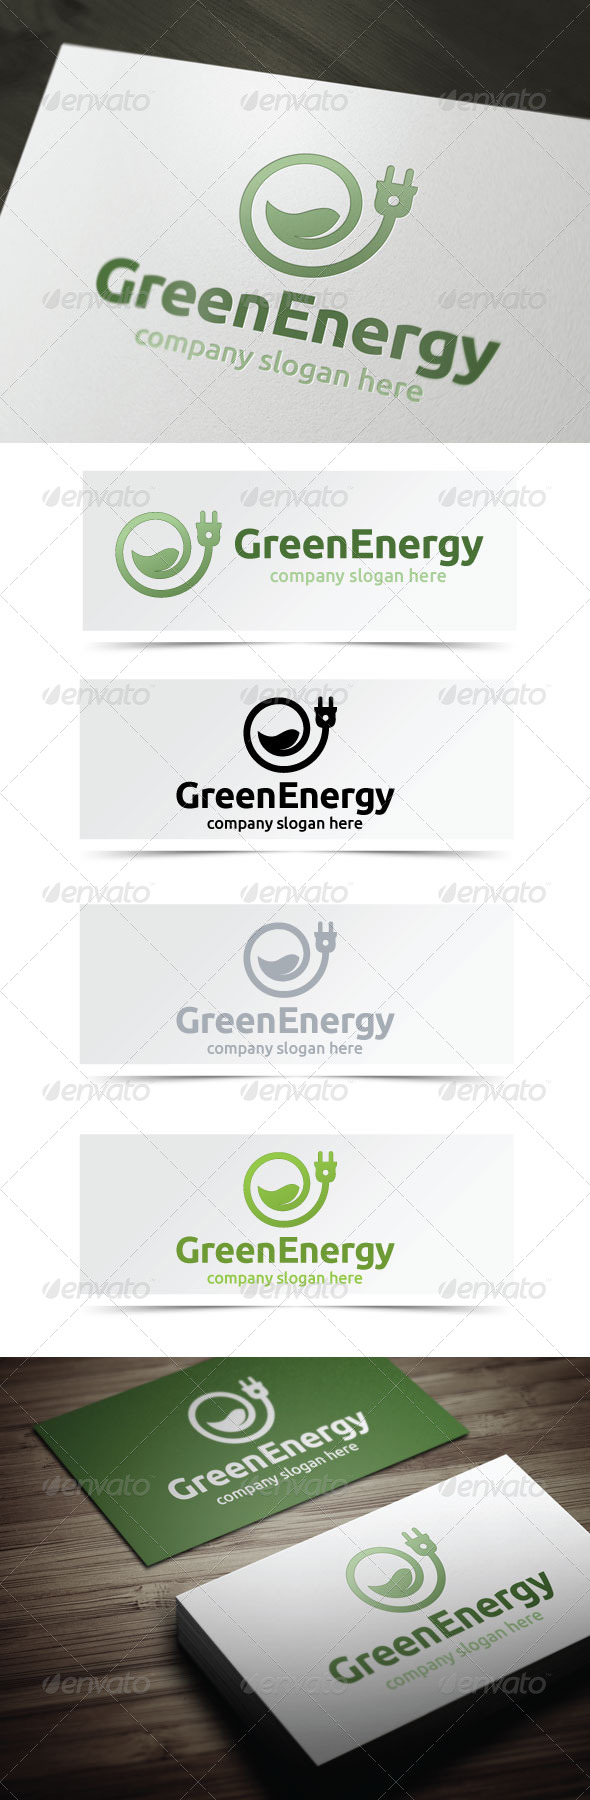 GraphicRiver Green Energy 4385423